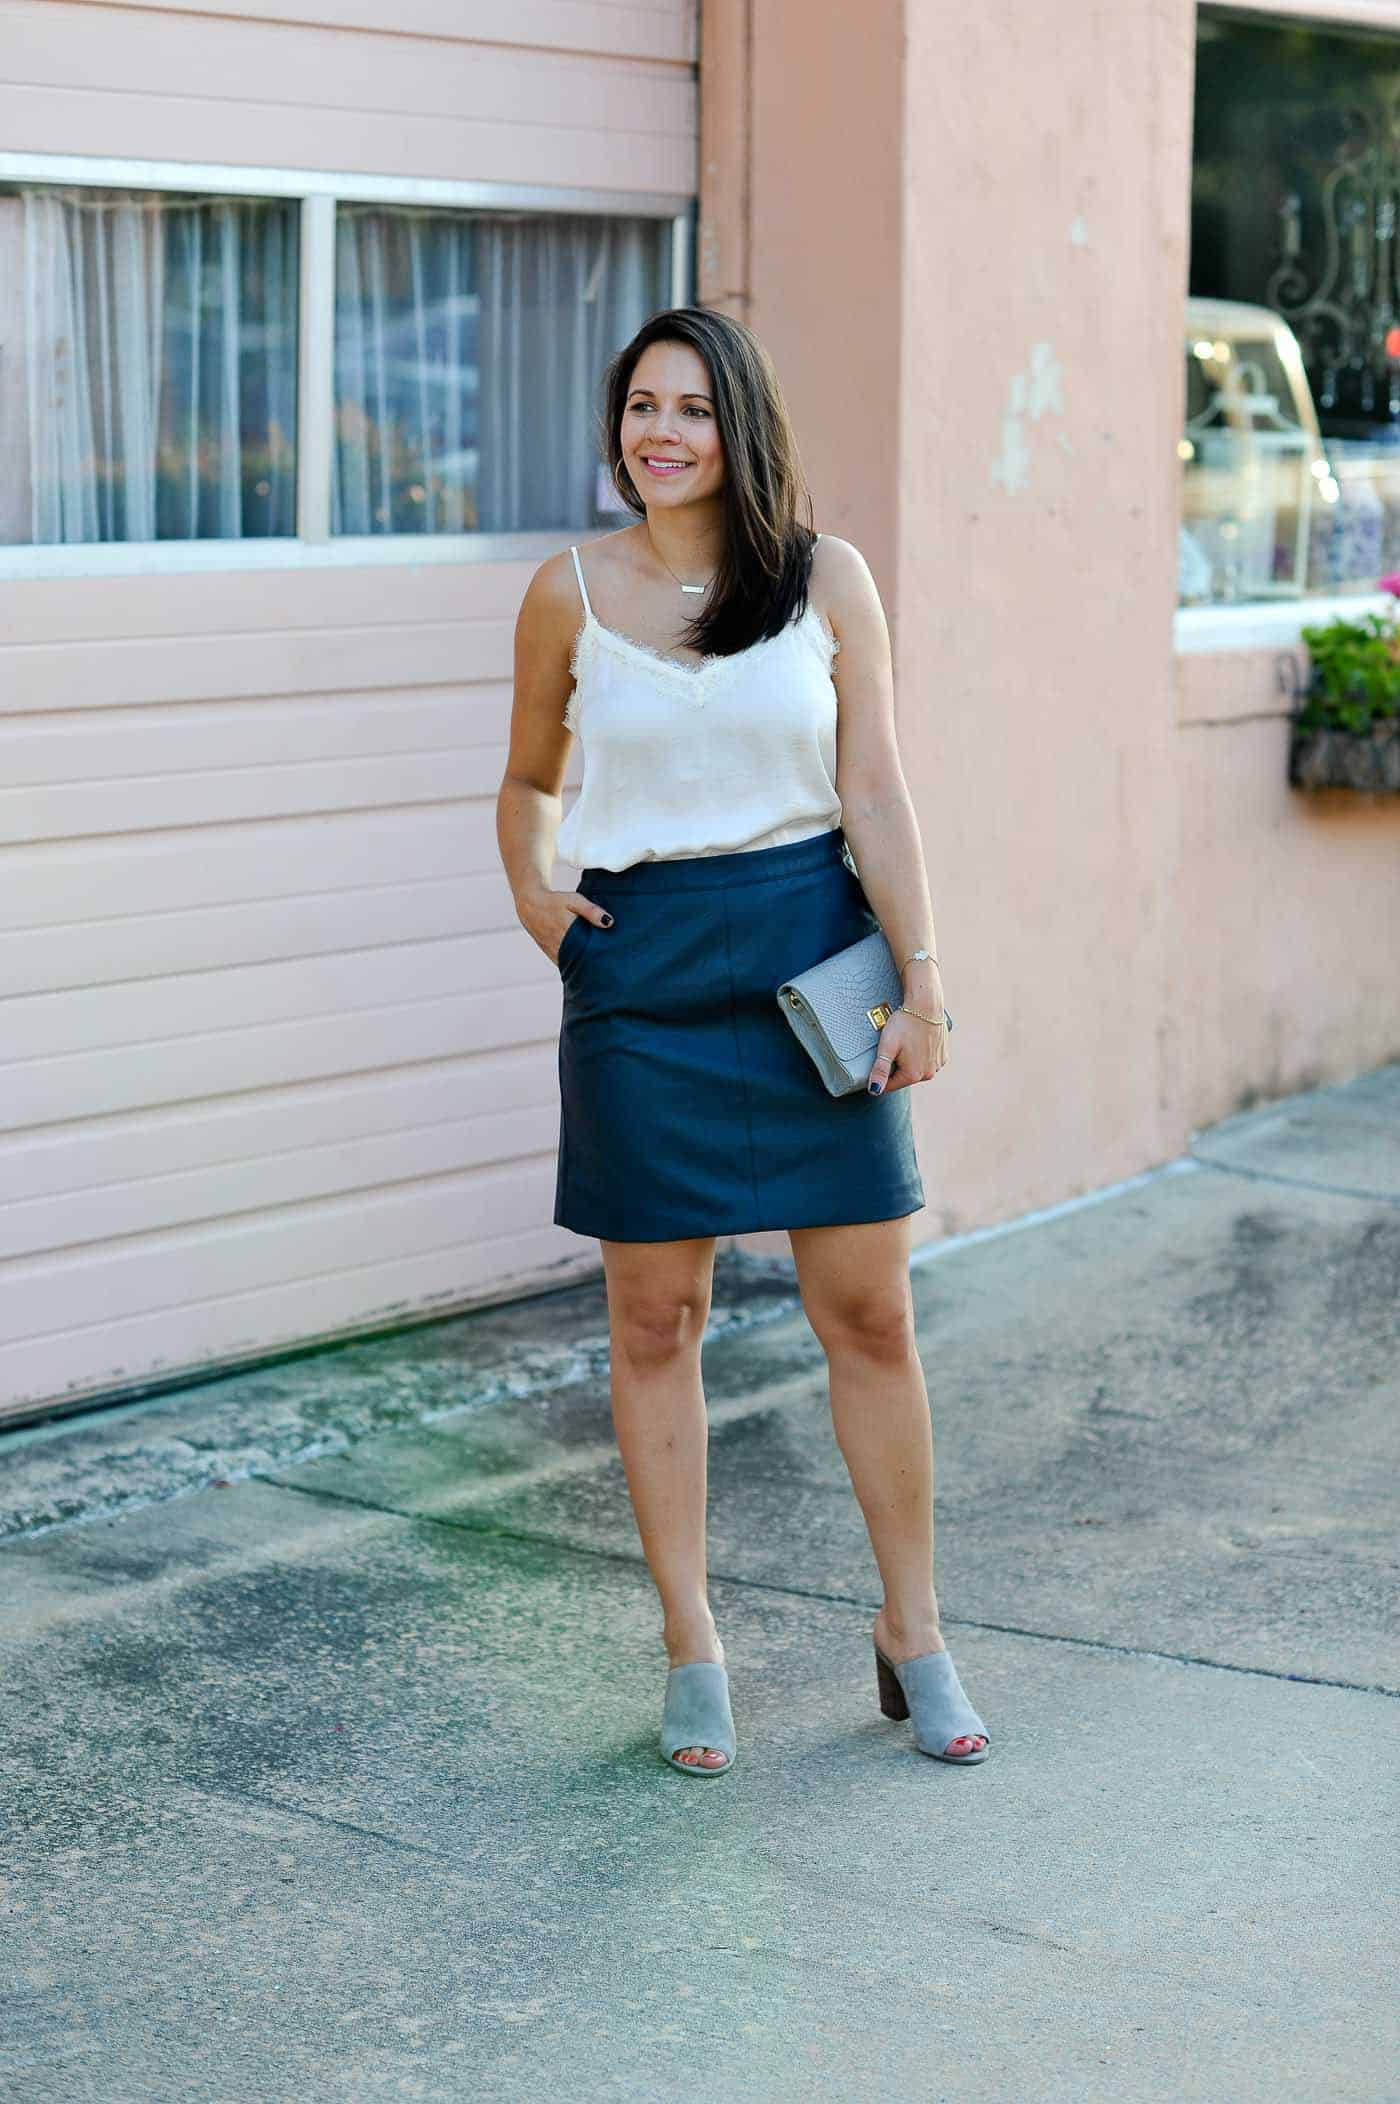 a3c61eefe lace tank and leather skirt outfit - My Style Vita @mystylevita